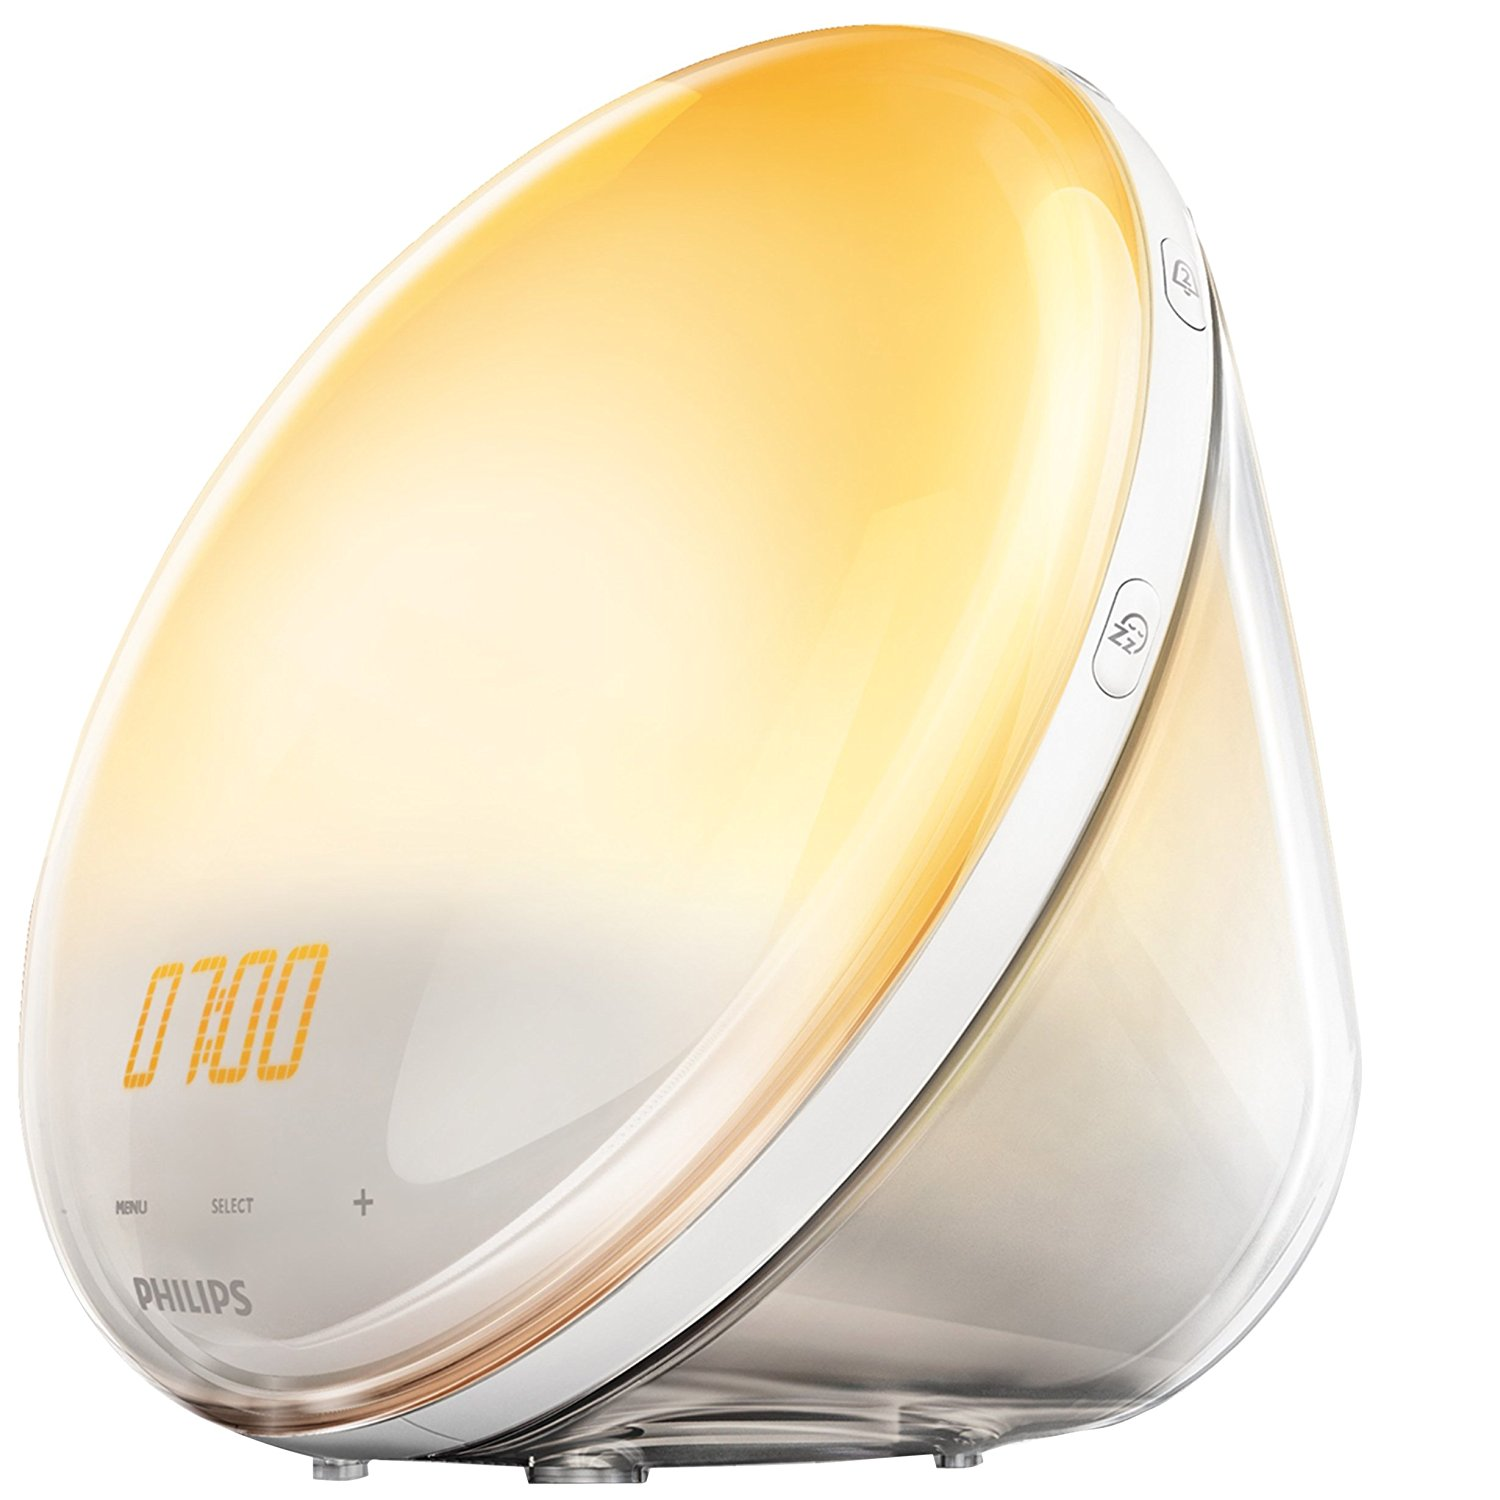 Wake-Up Light Philips HF 3531/01